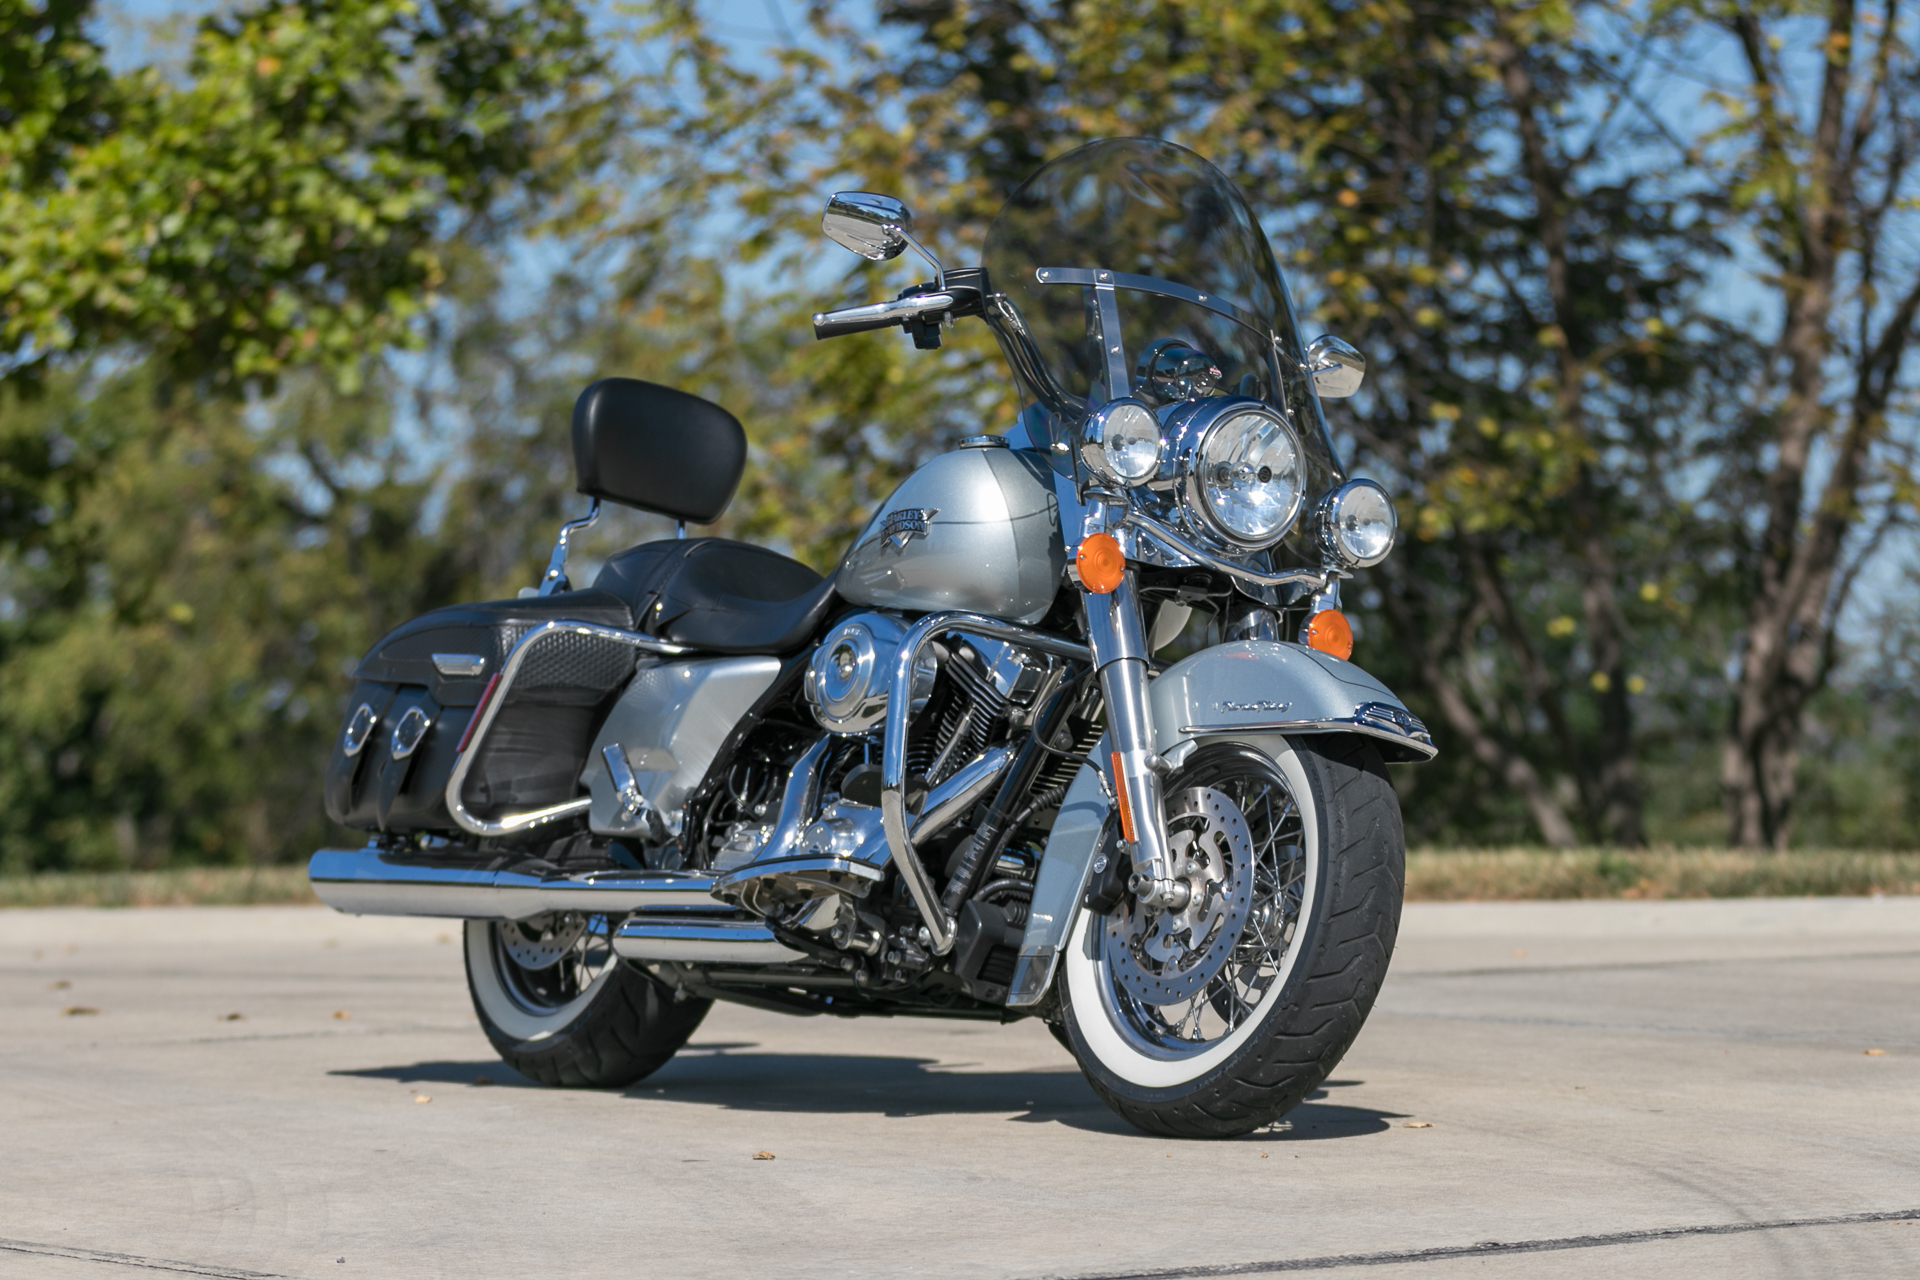 2011 harley davidson road king fast lane classic cars. Black Bedroom Furniture Sets. Home Design Ideas